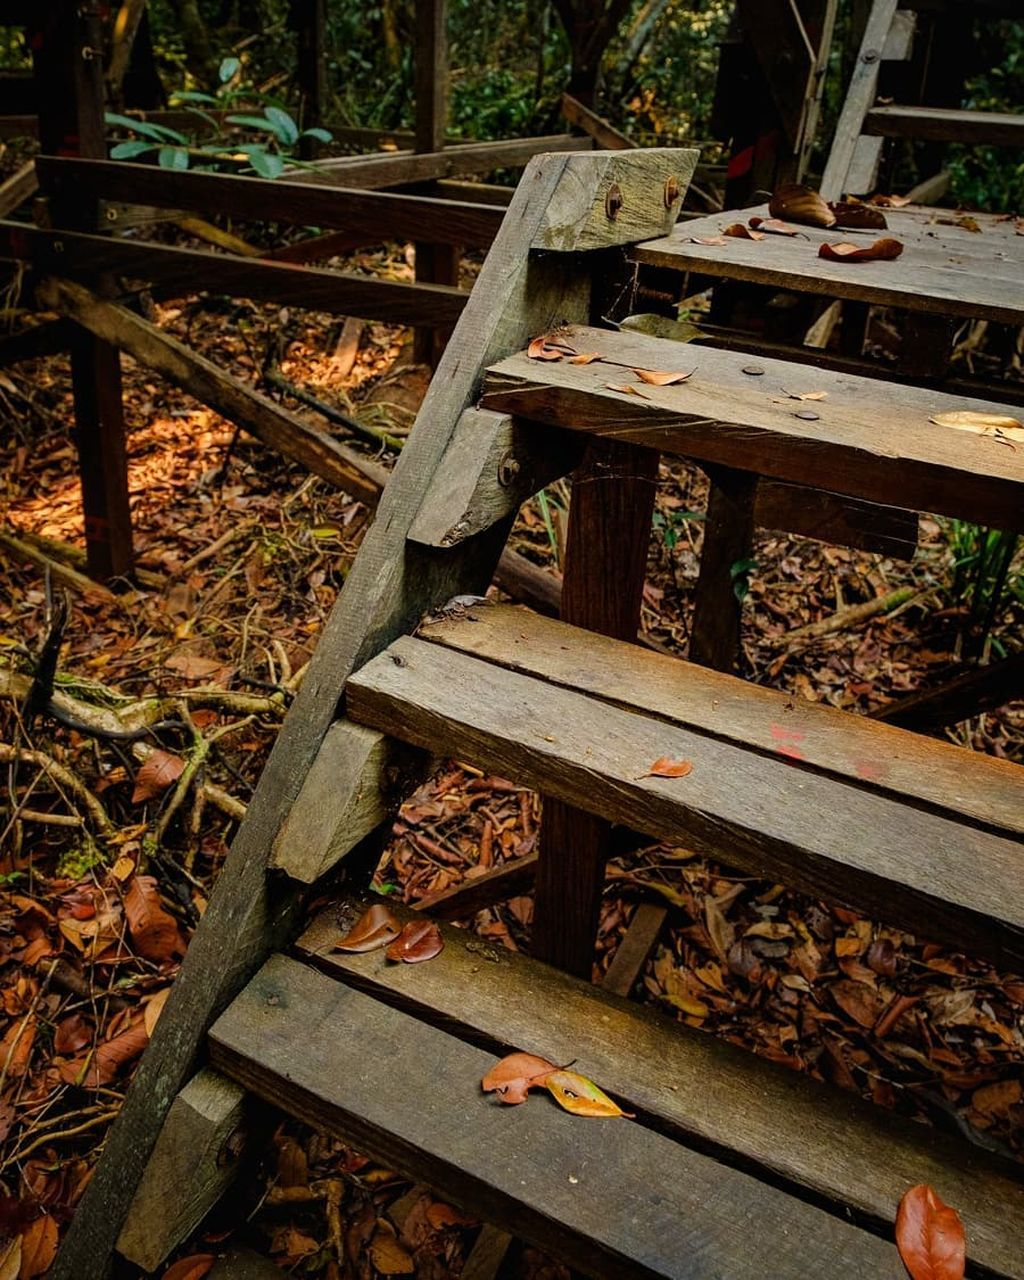 wood - material, metal, rusty, no people, day, nature, high angle view, old, abandoned, outdoors, close-up, wood, land, railroad track, leaf, tree, track, damaged, obsolete